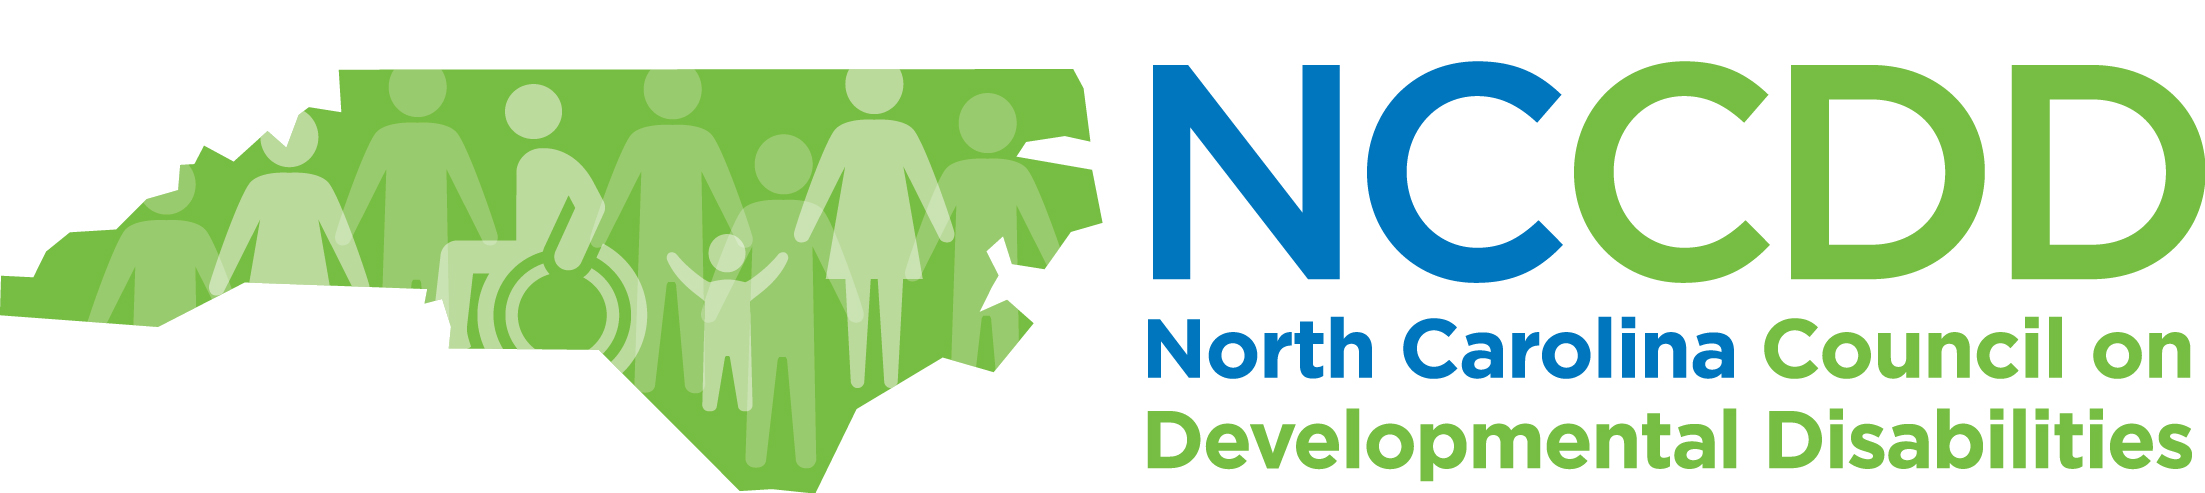 blue and green logo of the stage of north carolina